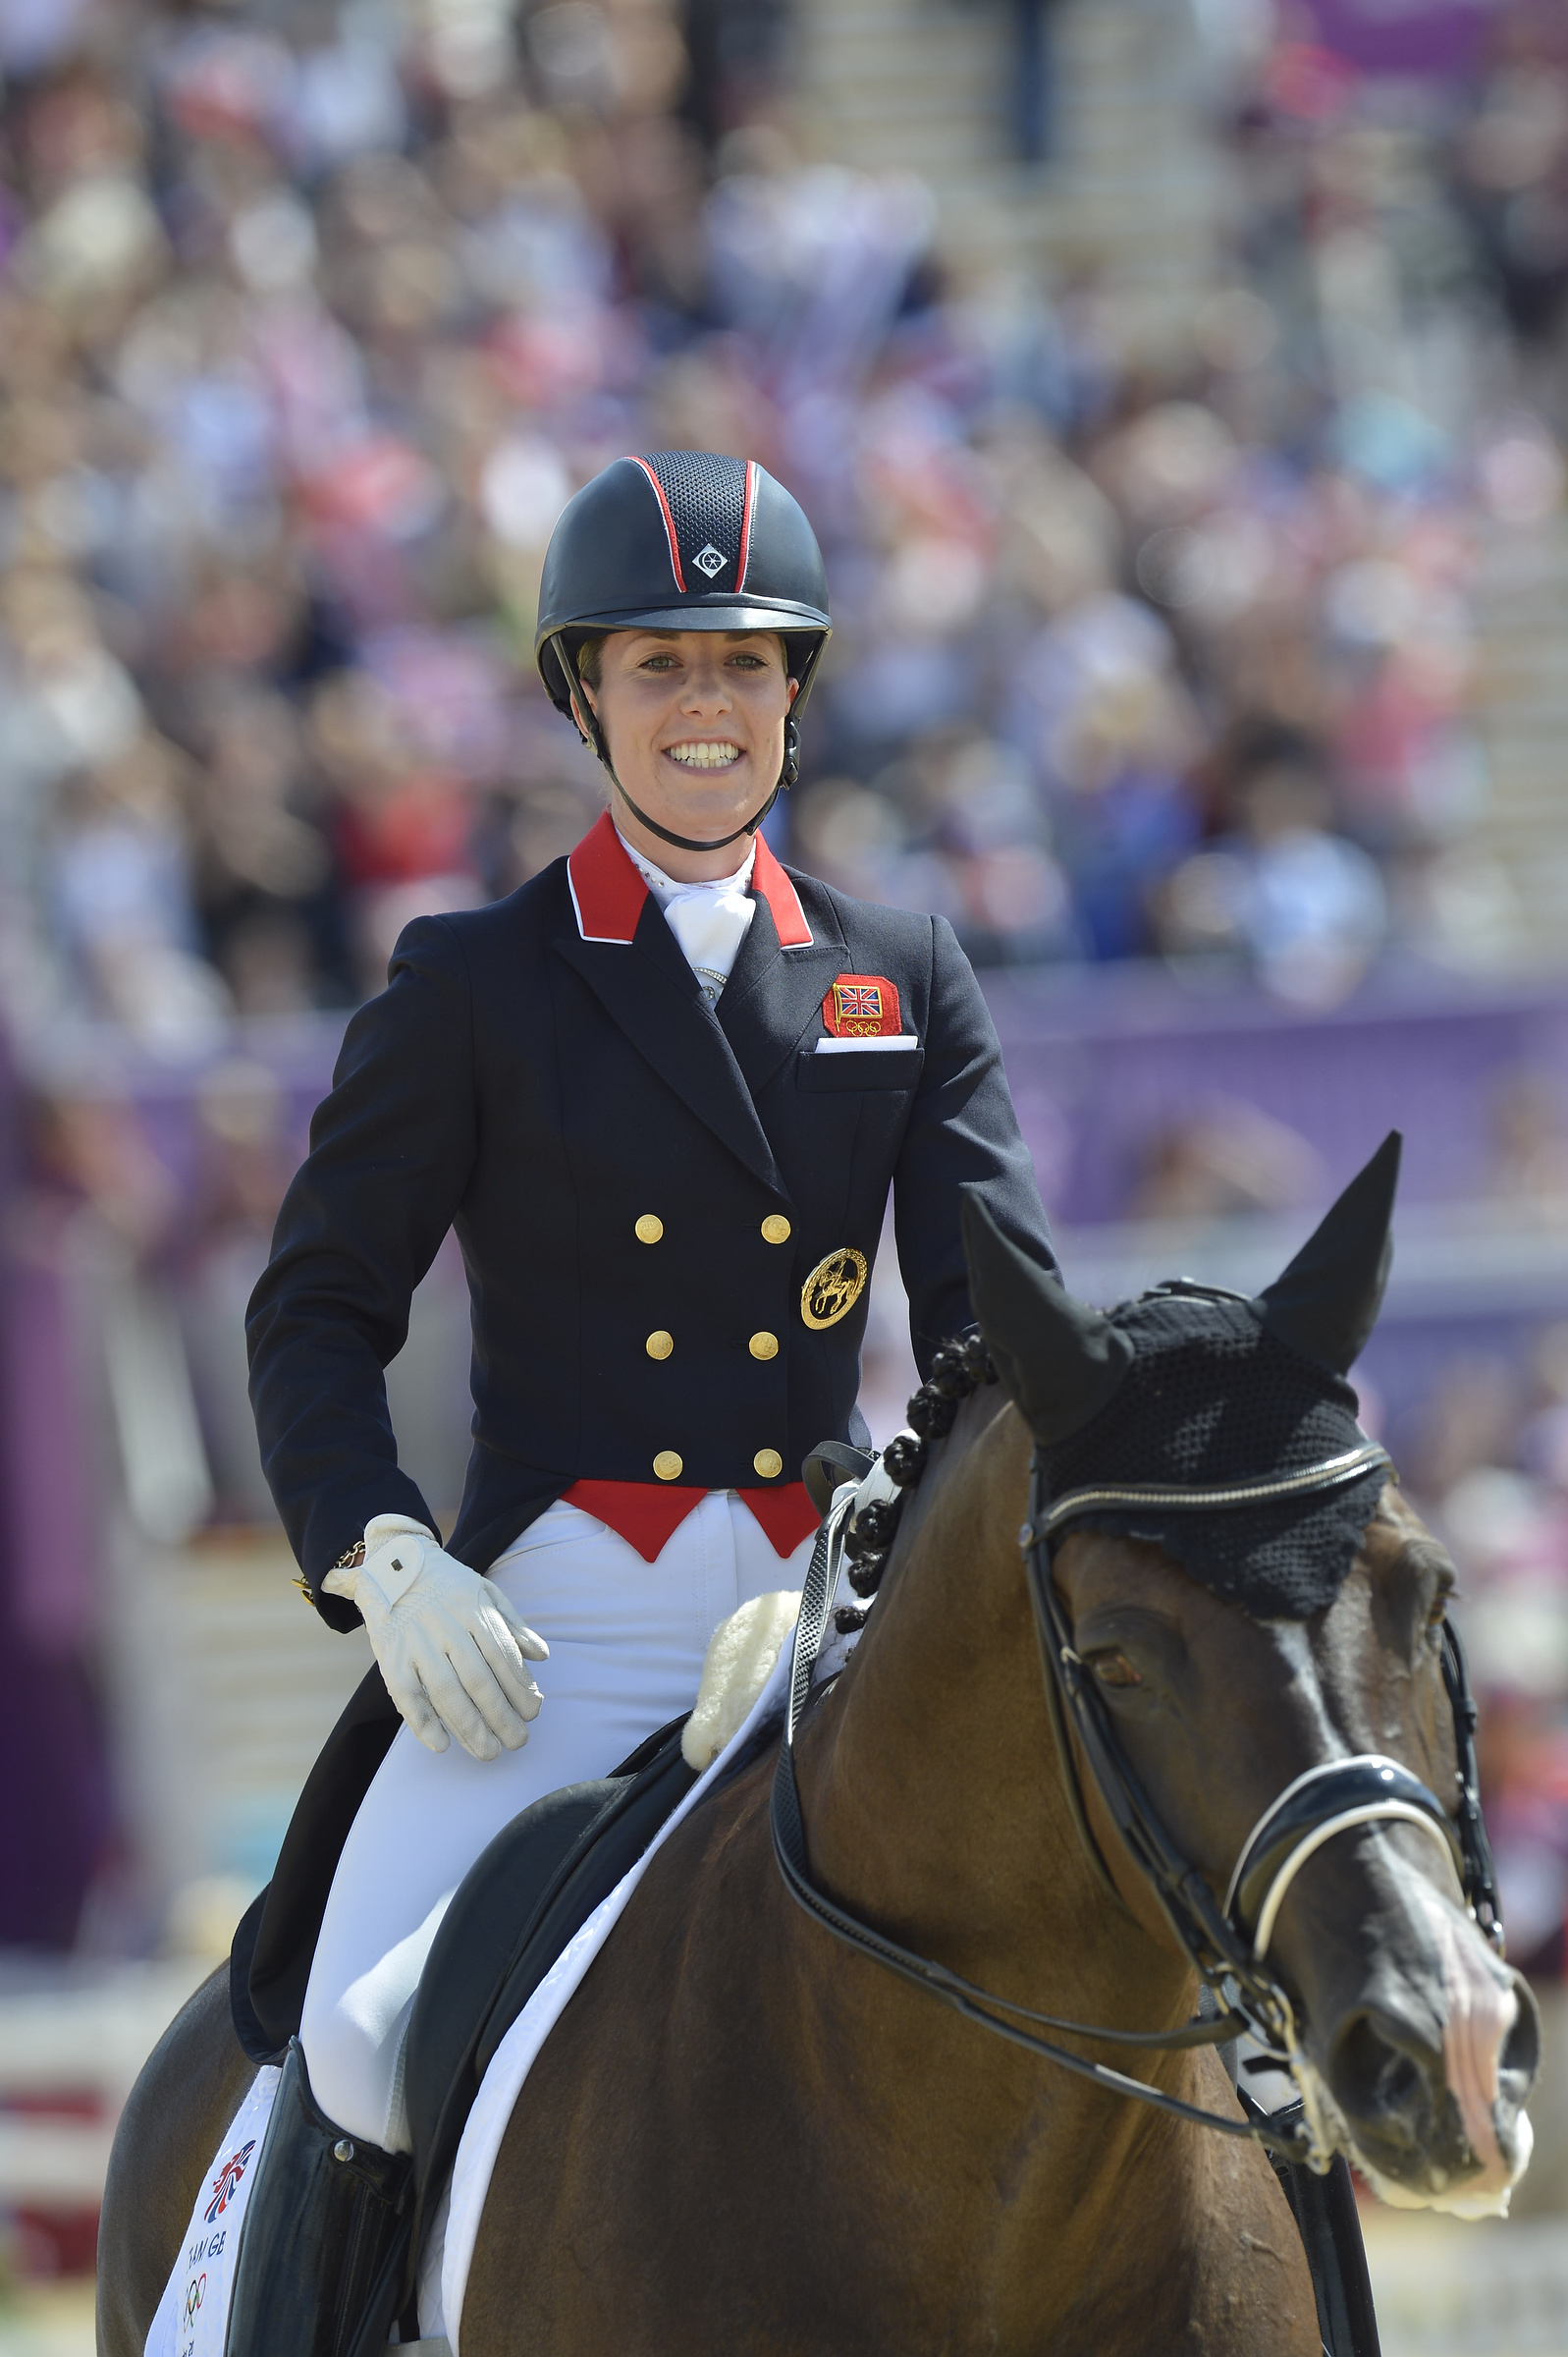 The multiple record-breaking Dressage partnership of Great Britain's Charlotte Dujardin and Valegro are in search of even more golden glory in Rio. © Kit Houghton/FEI